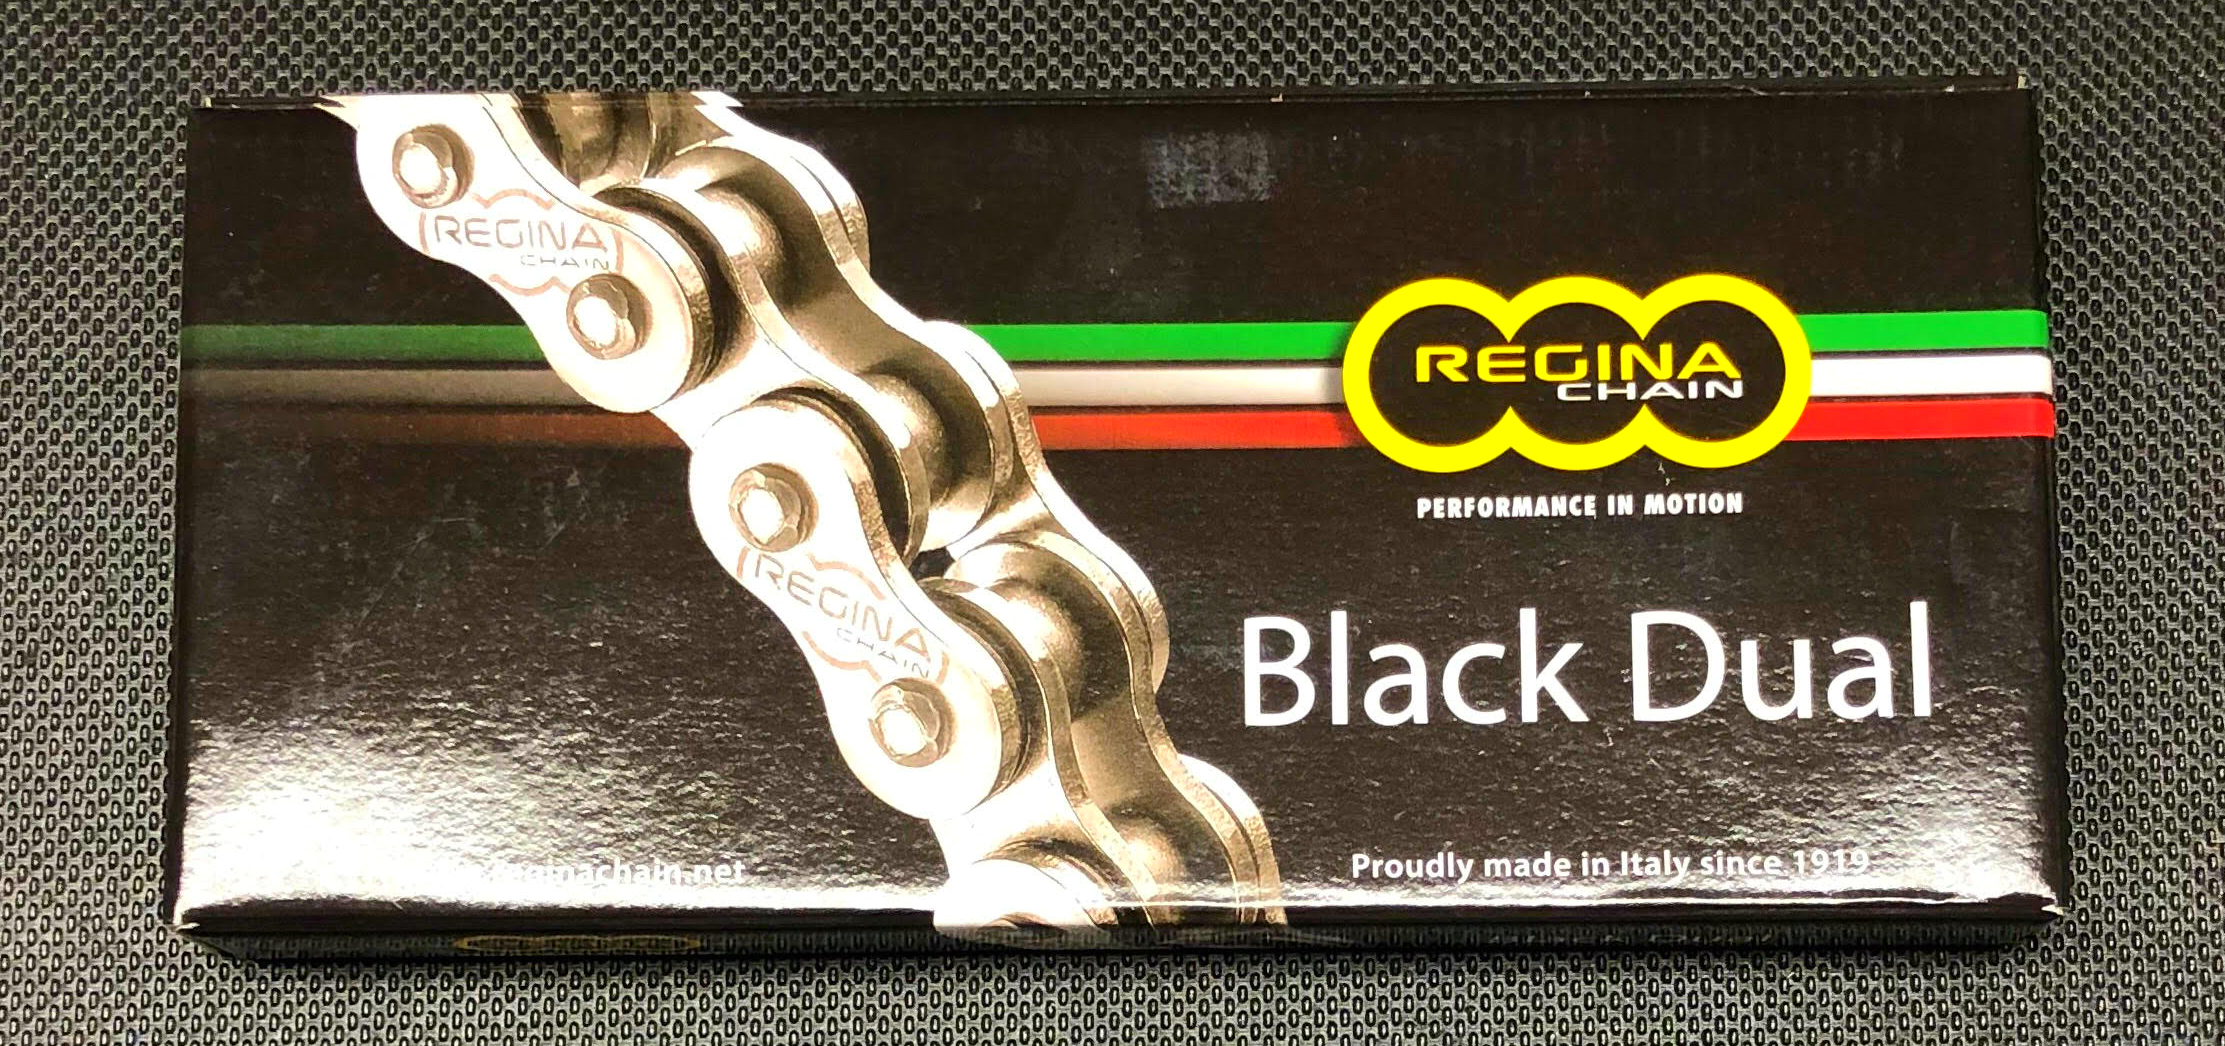 Black Dual Chain - Darken offers one Regina Black Dual chain, the 520/135 ZRA chain. This Z-Ring style chain is submitted to enhanced pre-stretching, ensuring high mileage, reduced elongation and extended lubrication intervals.